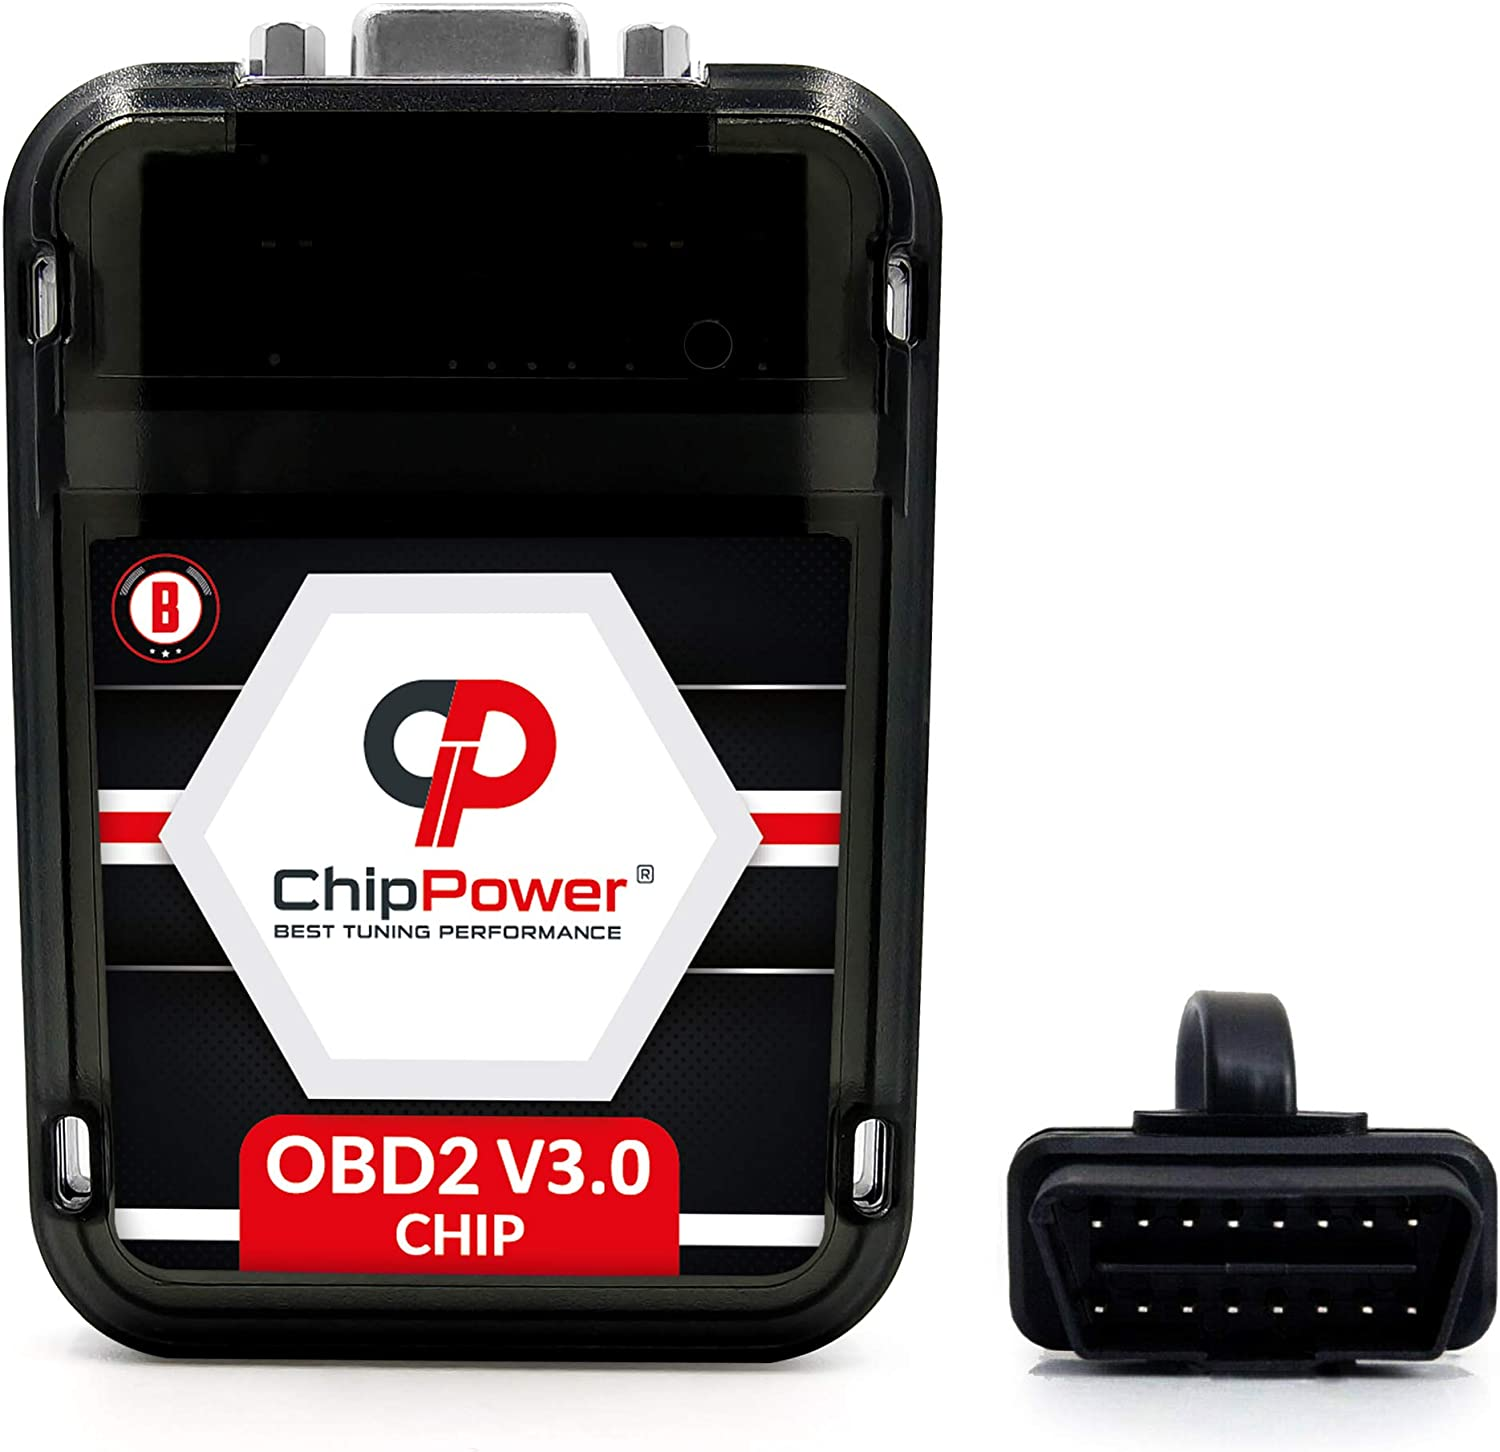 Chiptuning ChipPower OBD2 v3 mit Plug/&Drive f/ür Duster II 1.0 TCe 100 74 kW 101 PS 2019 Tuningbox Benzin Chip Tuning Mehr Leistung Weniger Verbrauch